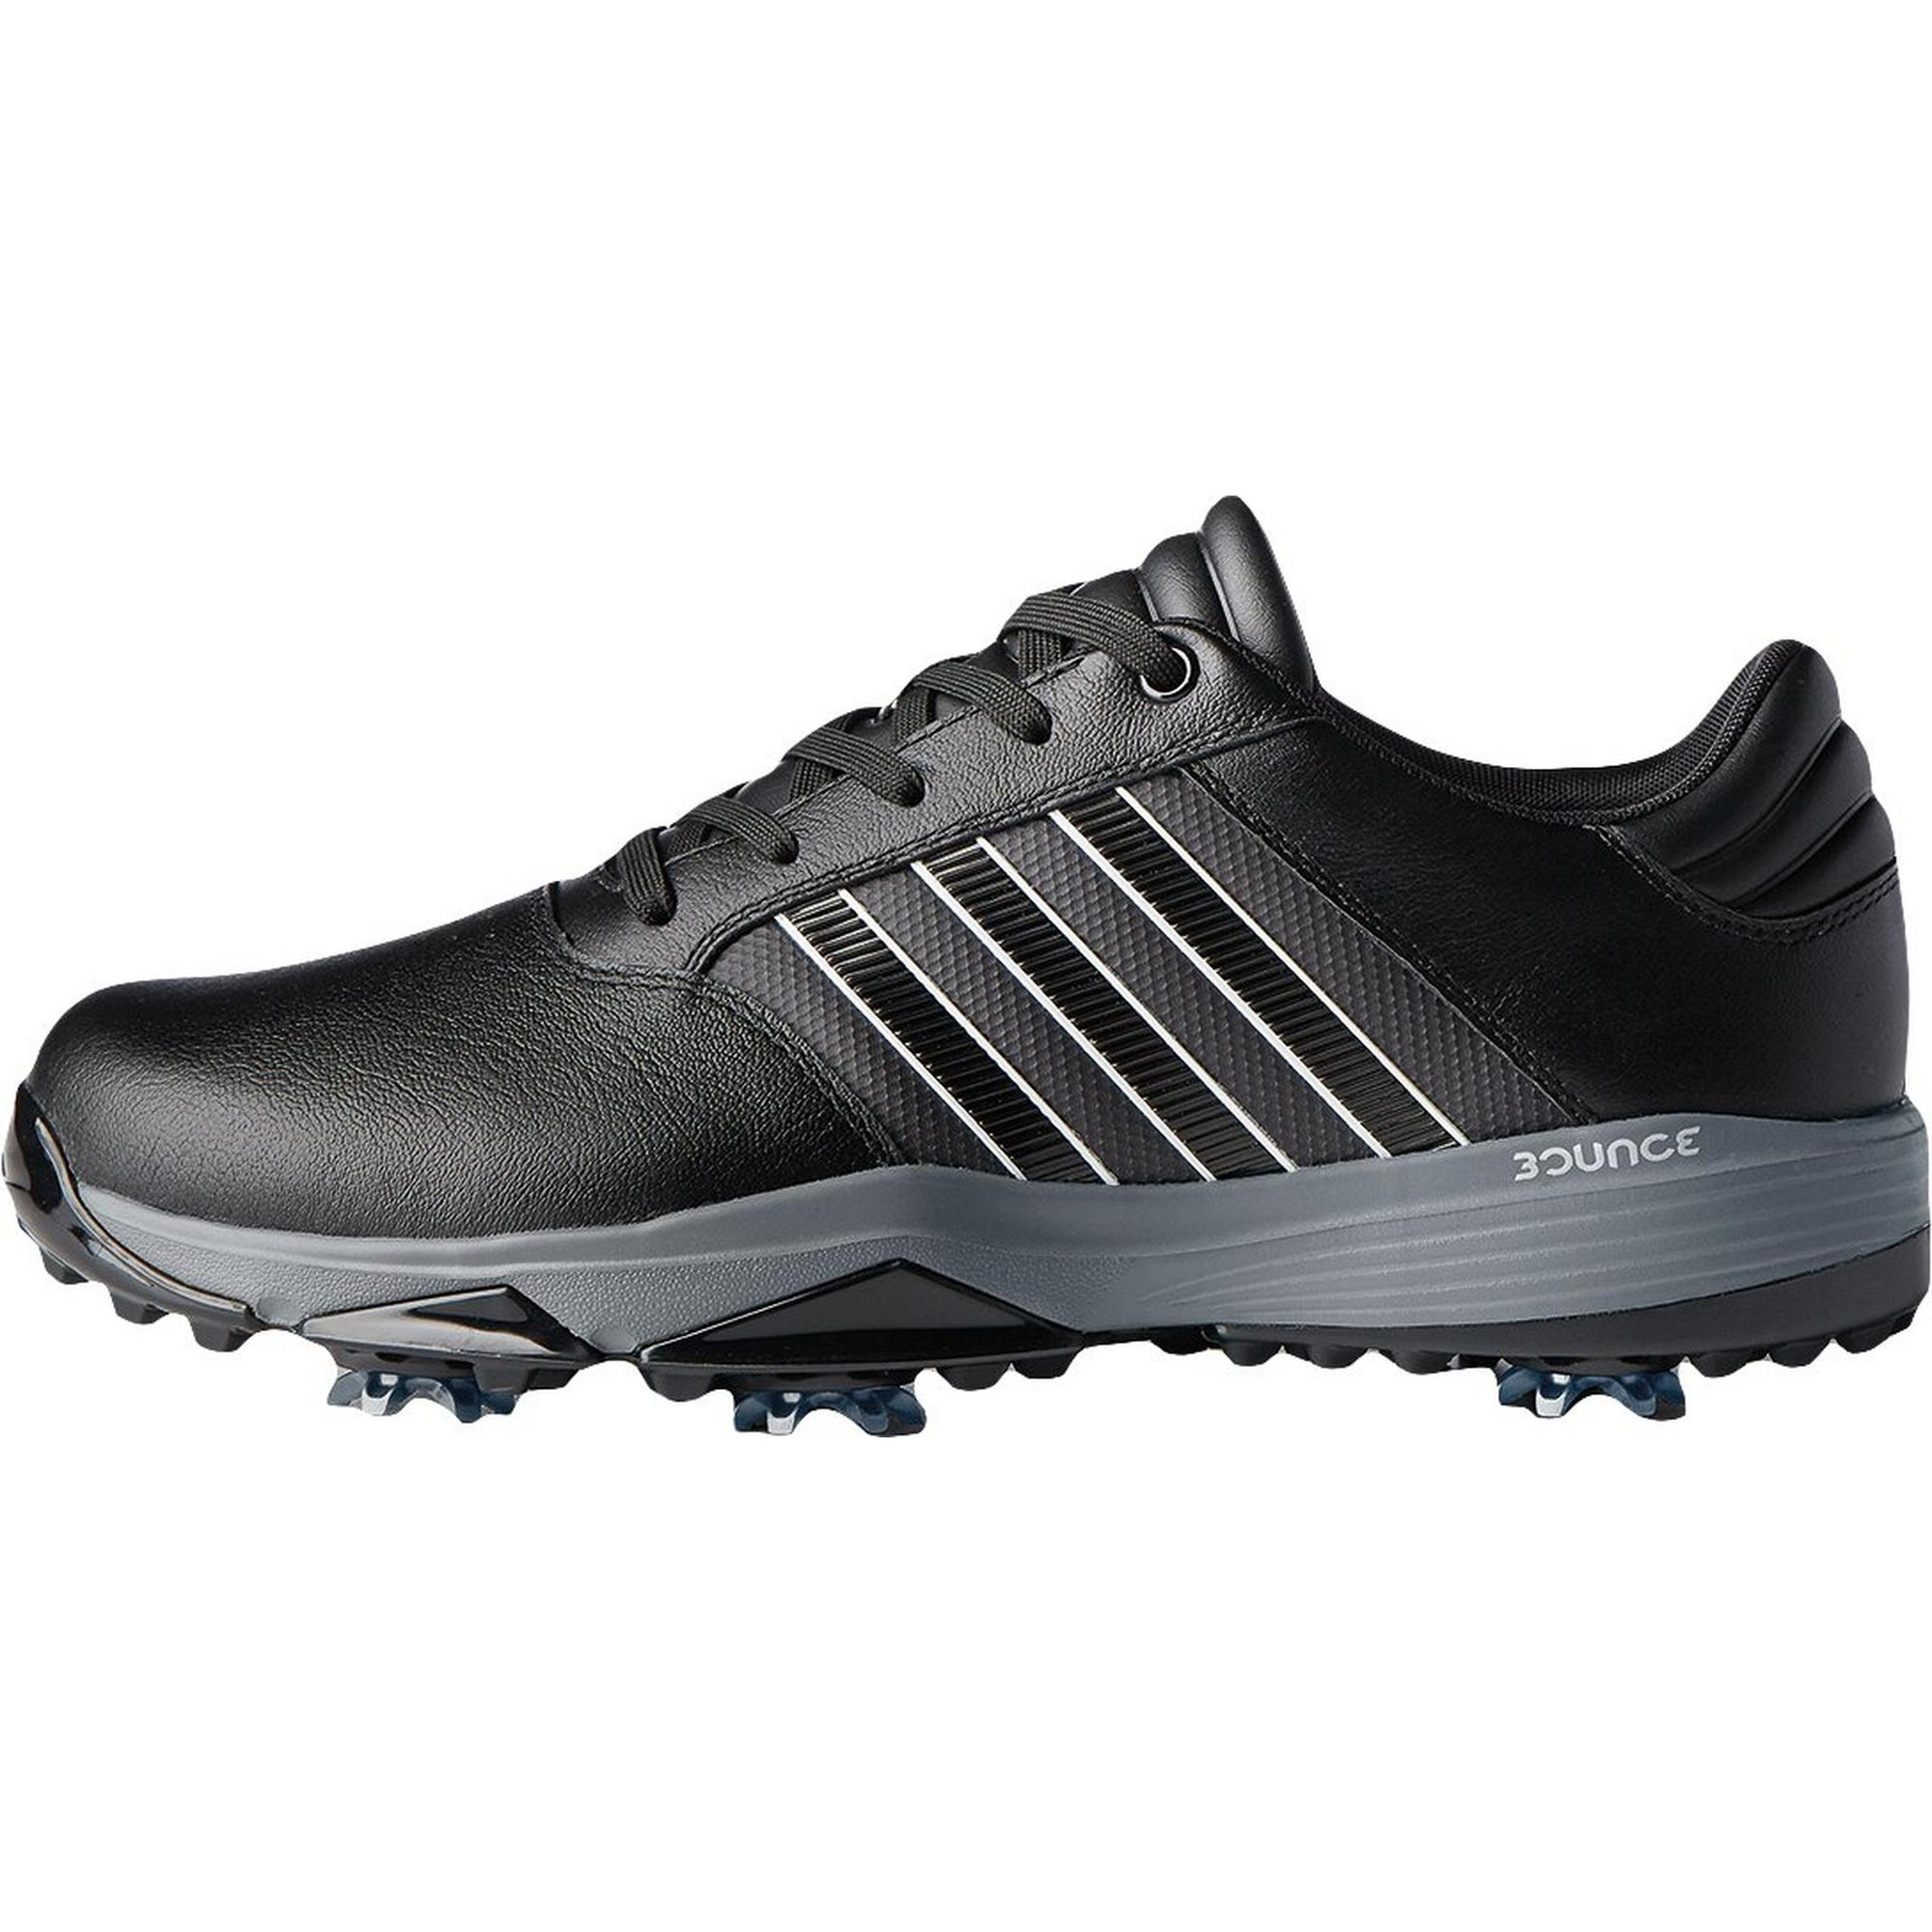 Men's 360 Bounce Spiked Golf Shoe - Black